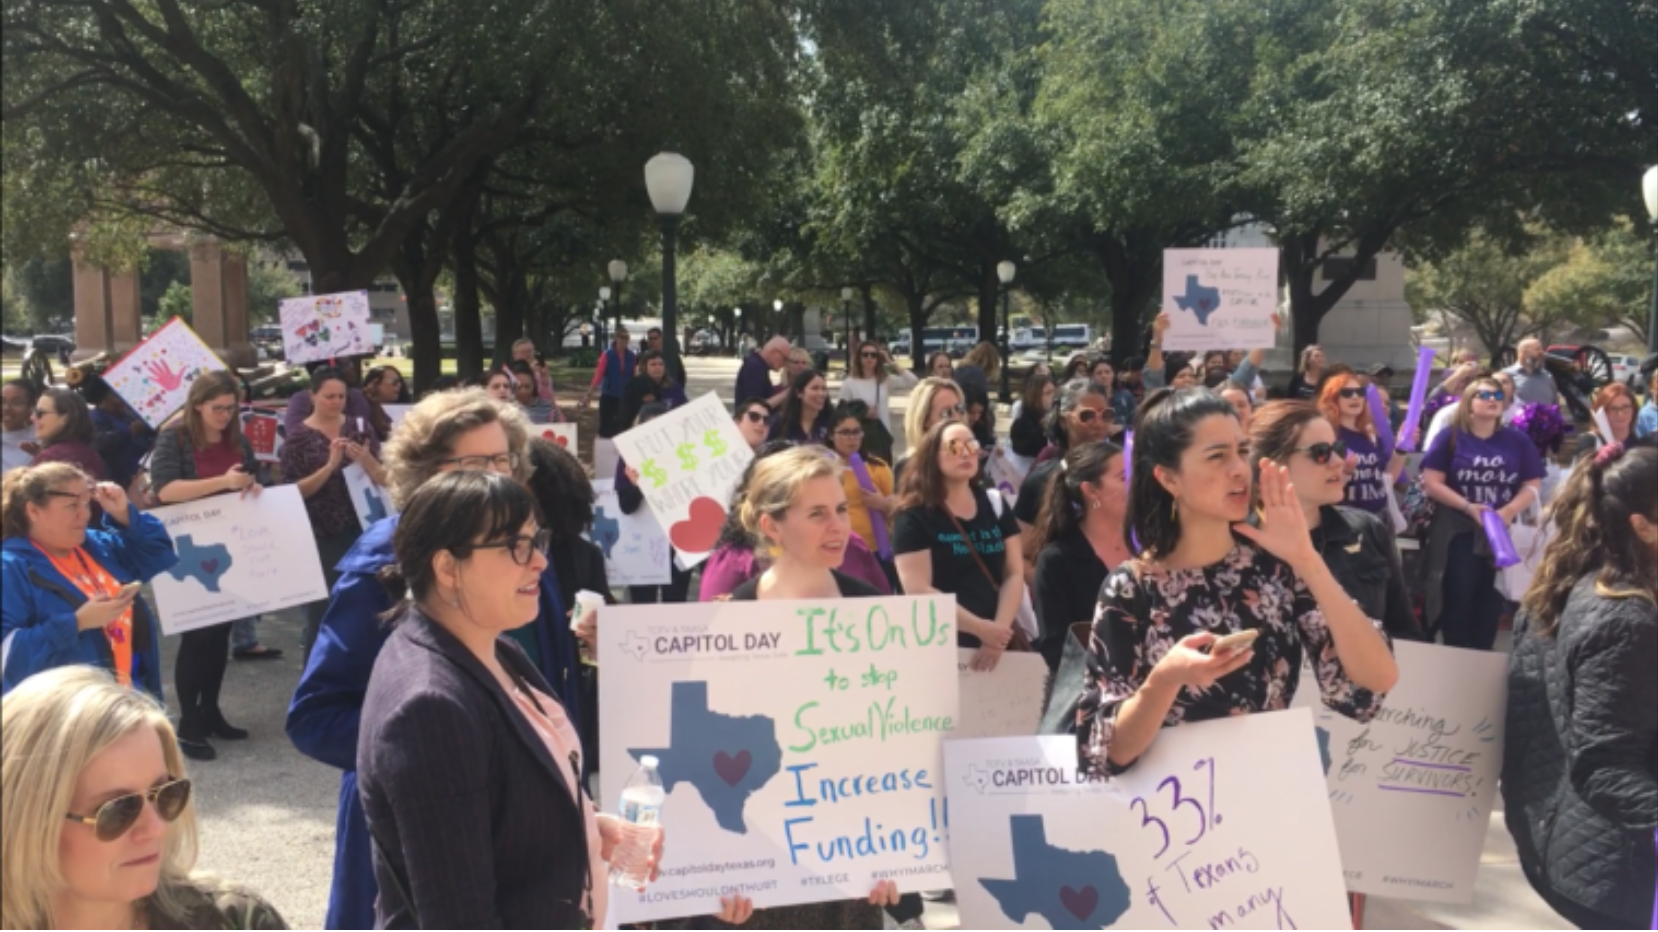 Texas Lawmakers Propose Funding Increase to Eliminate Waitlists at Rape Crisis Centers